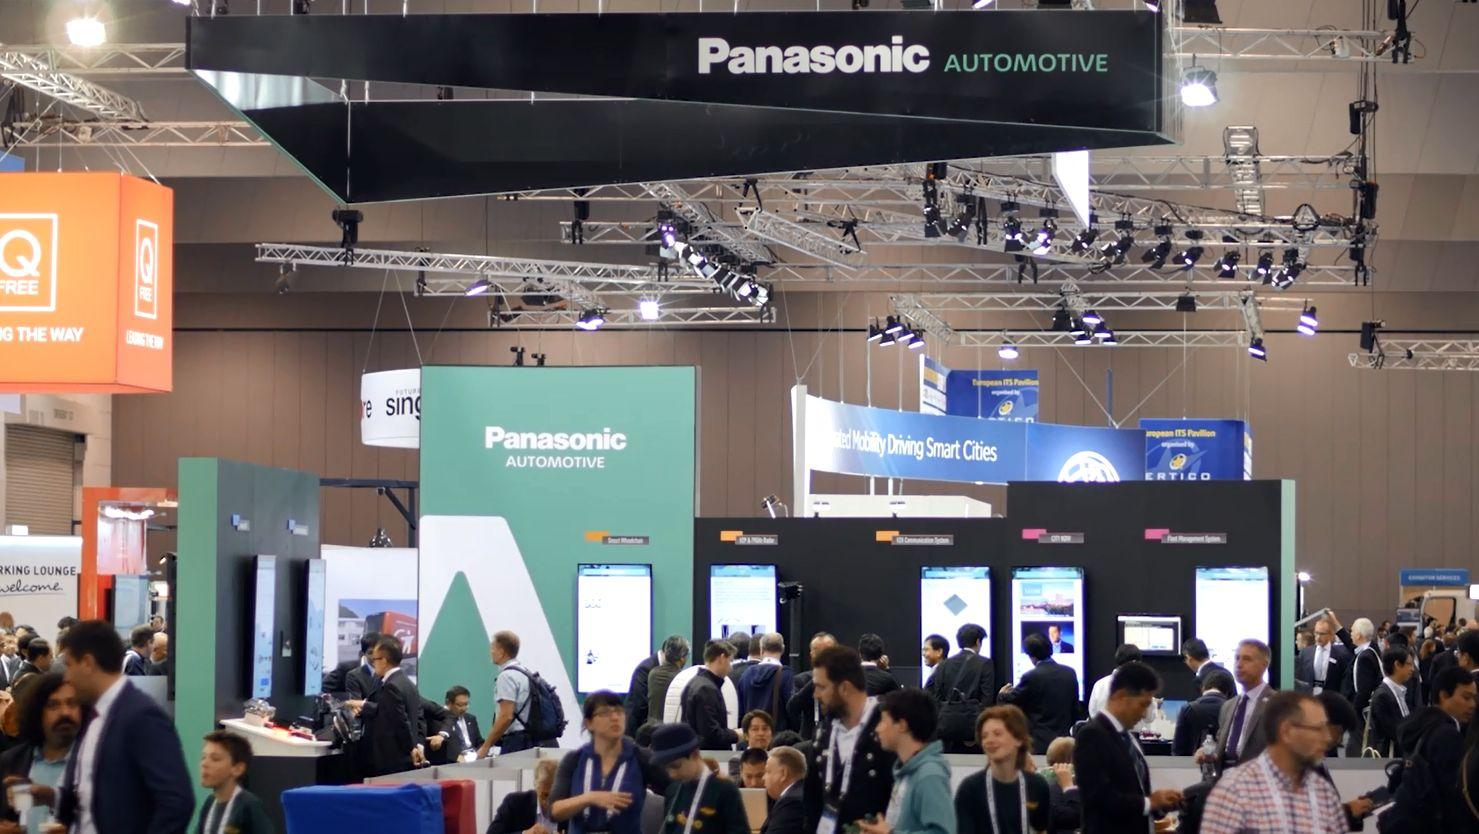 Exhibition Booth Images : Panasonic showcasing themes and has published